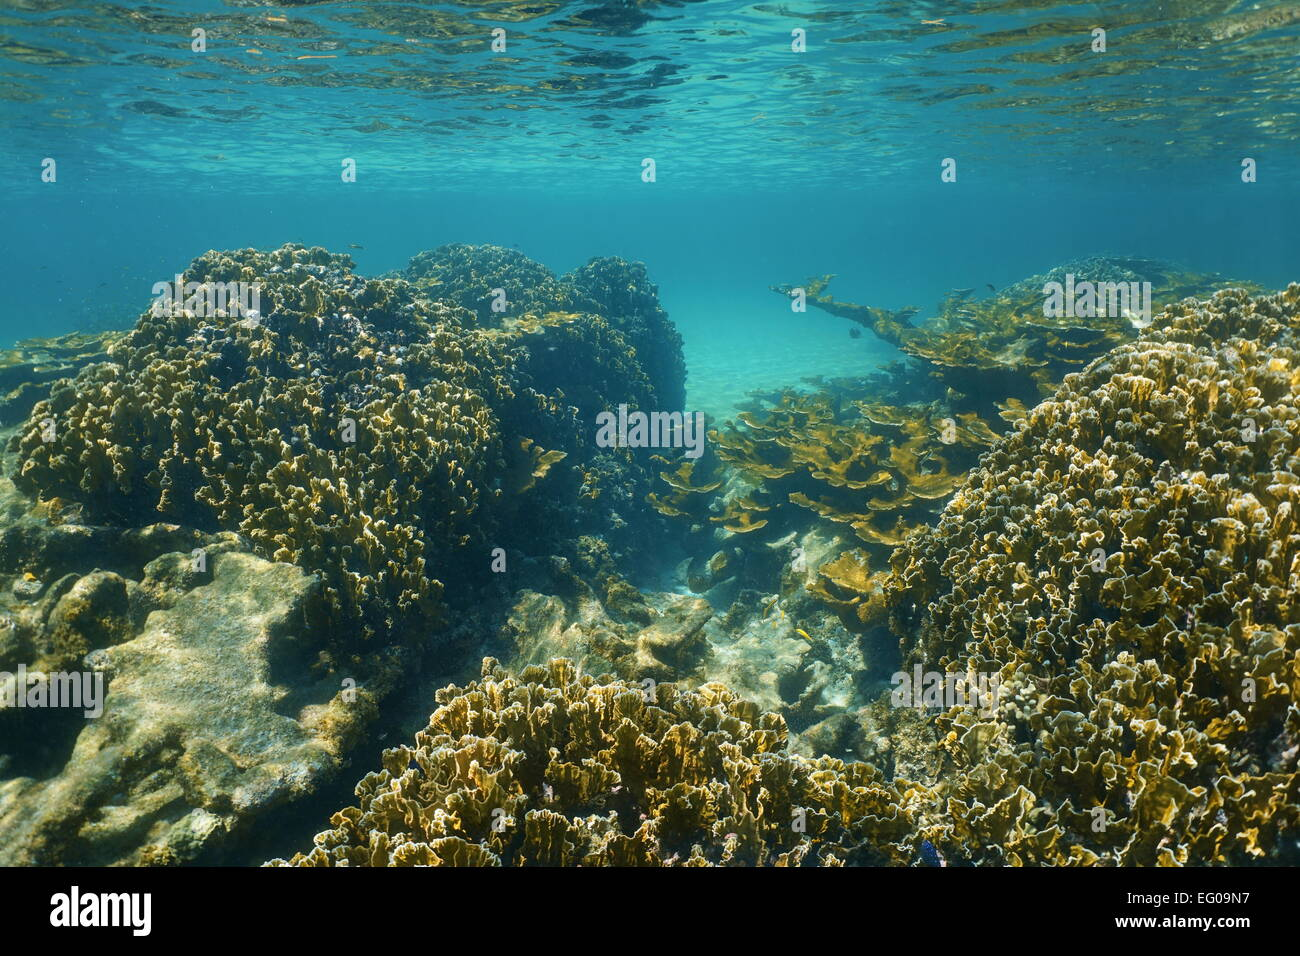 Underwater landscape on a stony coral reef close to the surface in the Caribbean sea - Stock Image